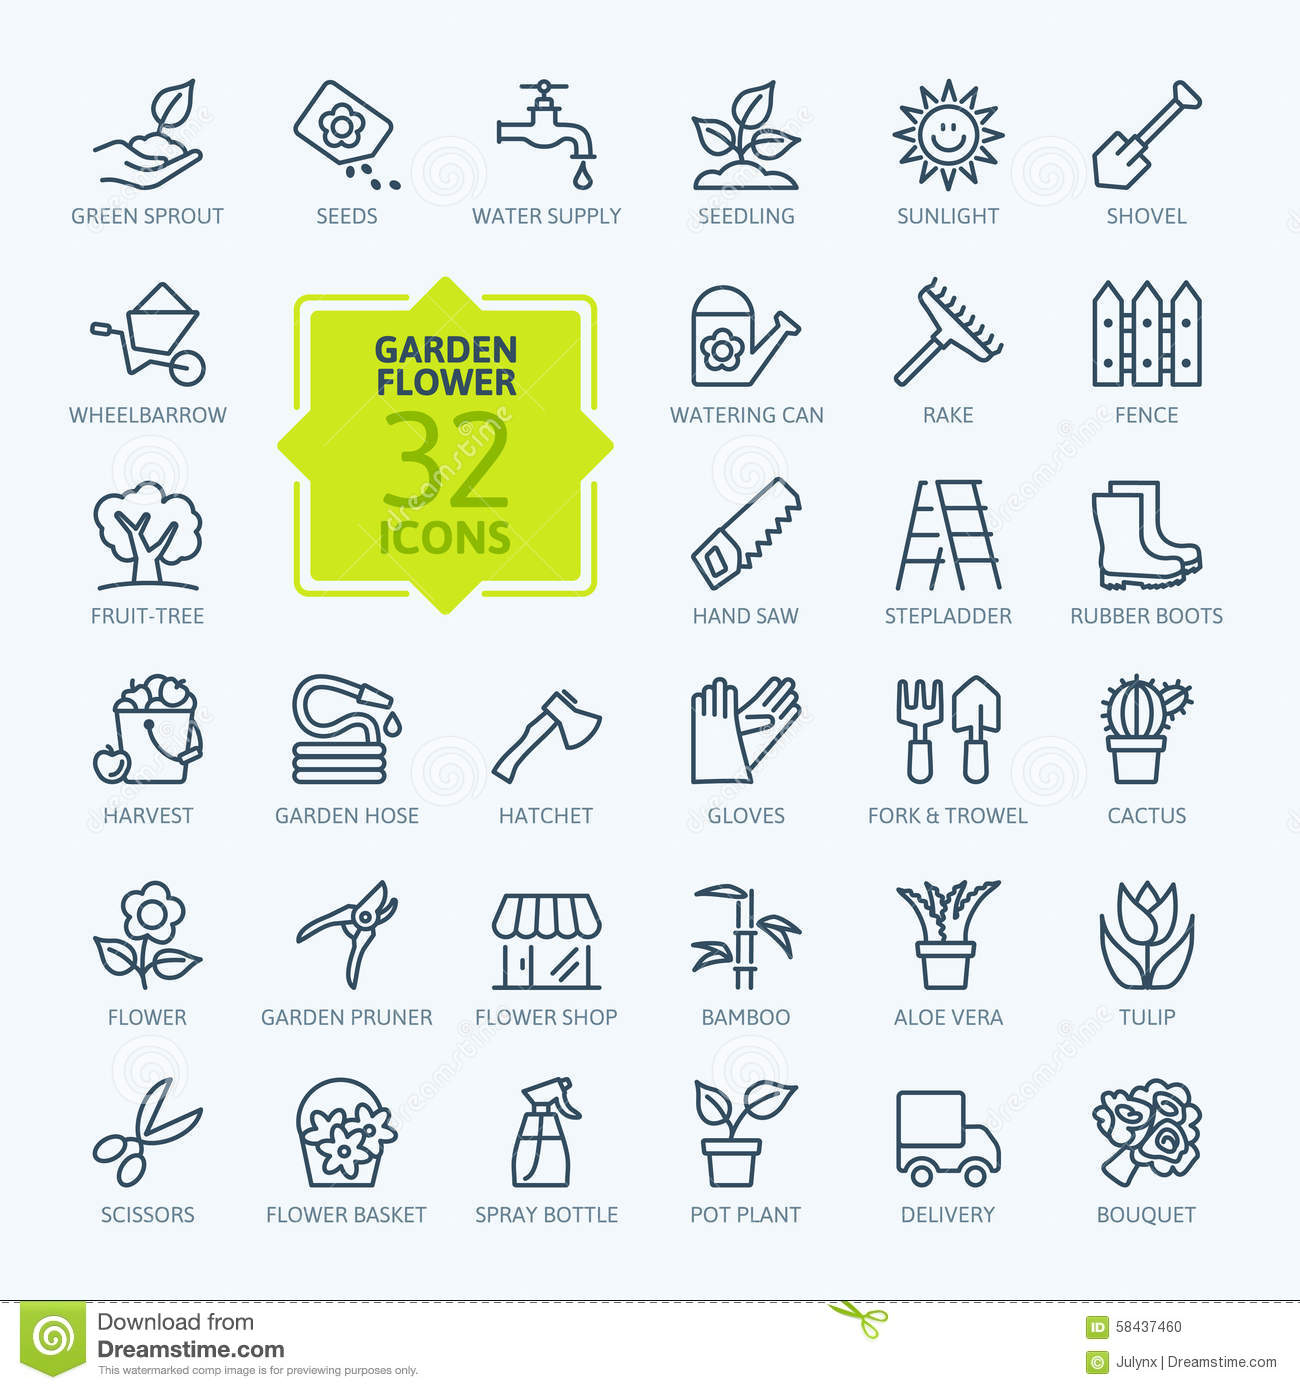 Outline icon set - Flower and Gardening